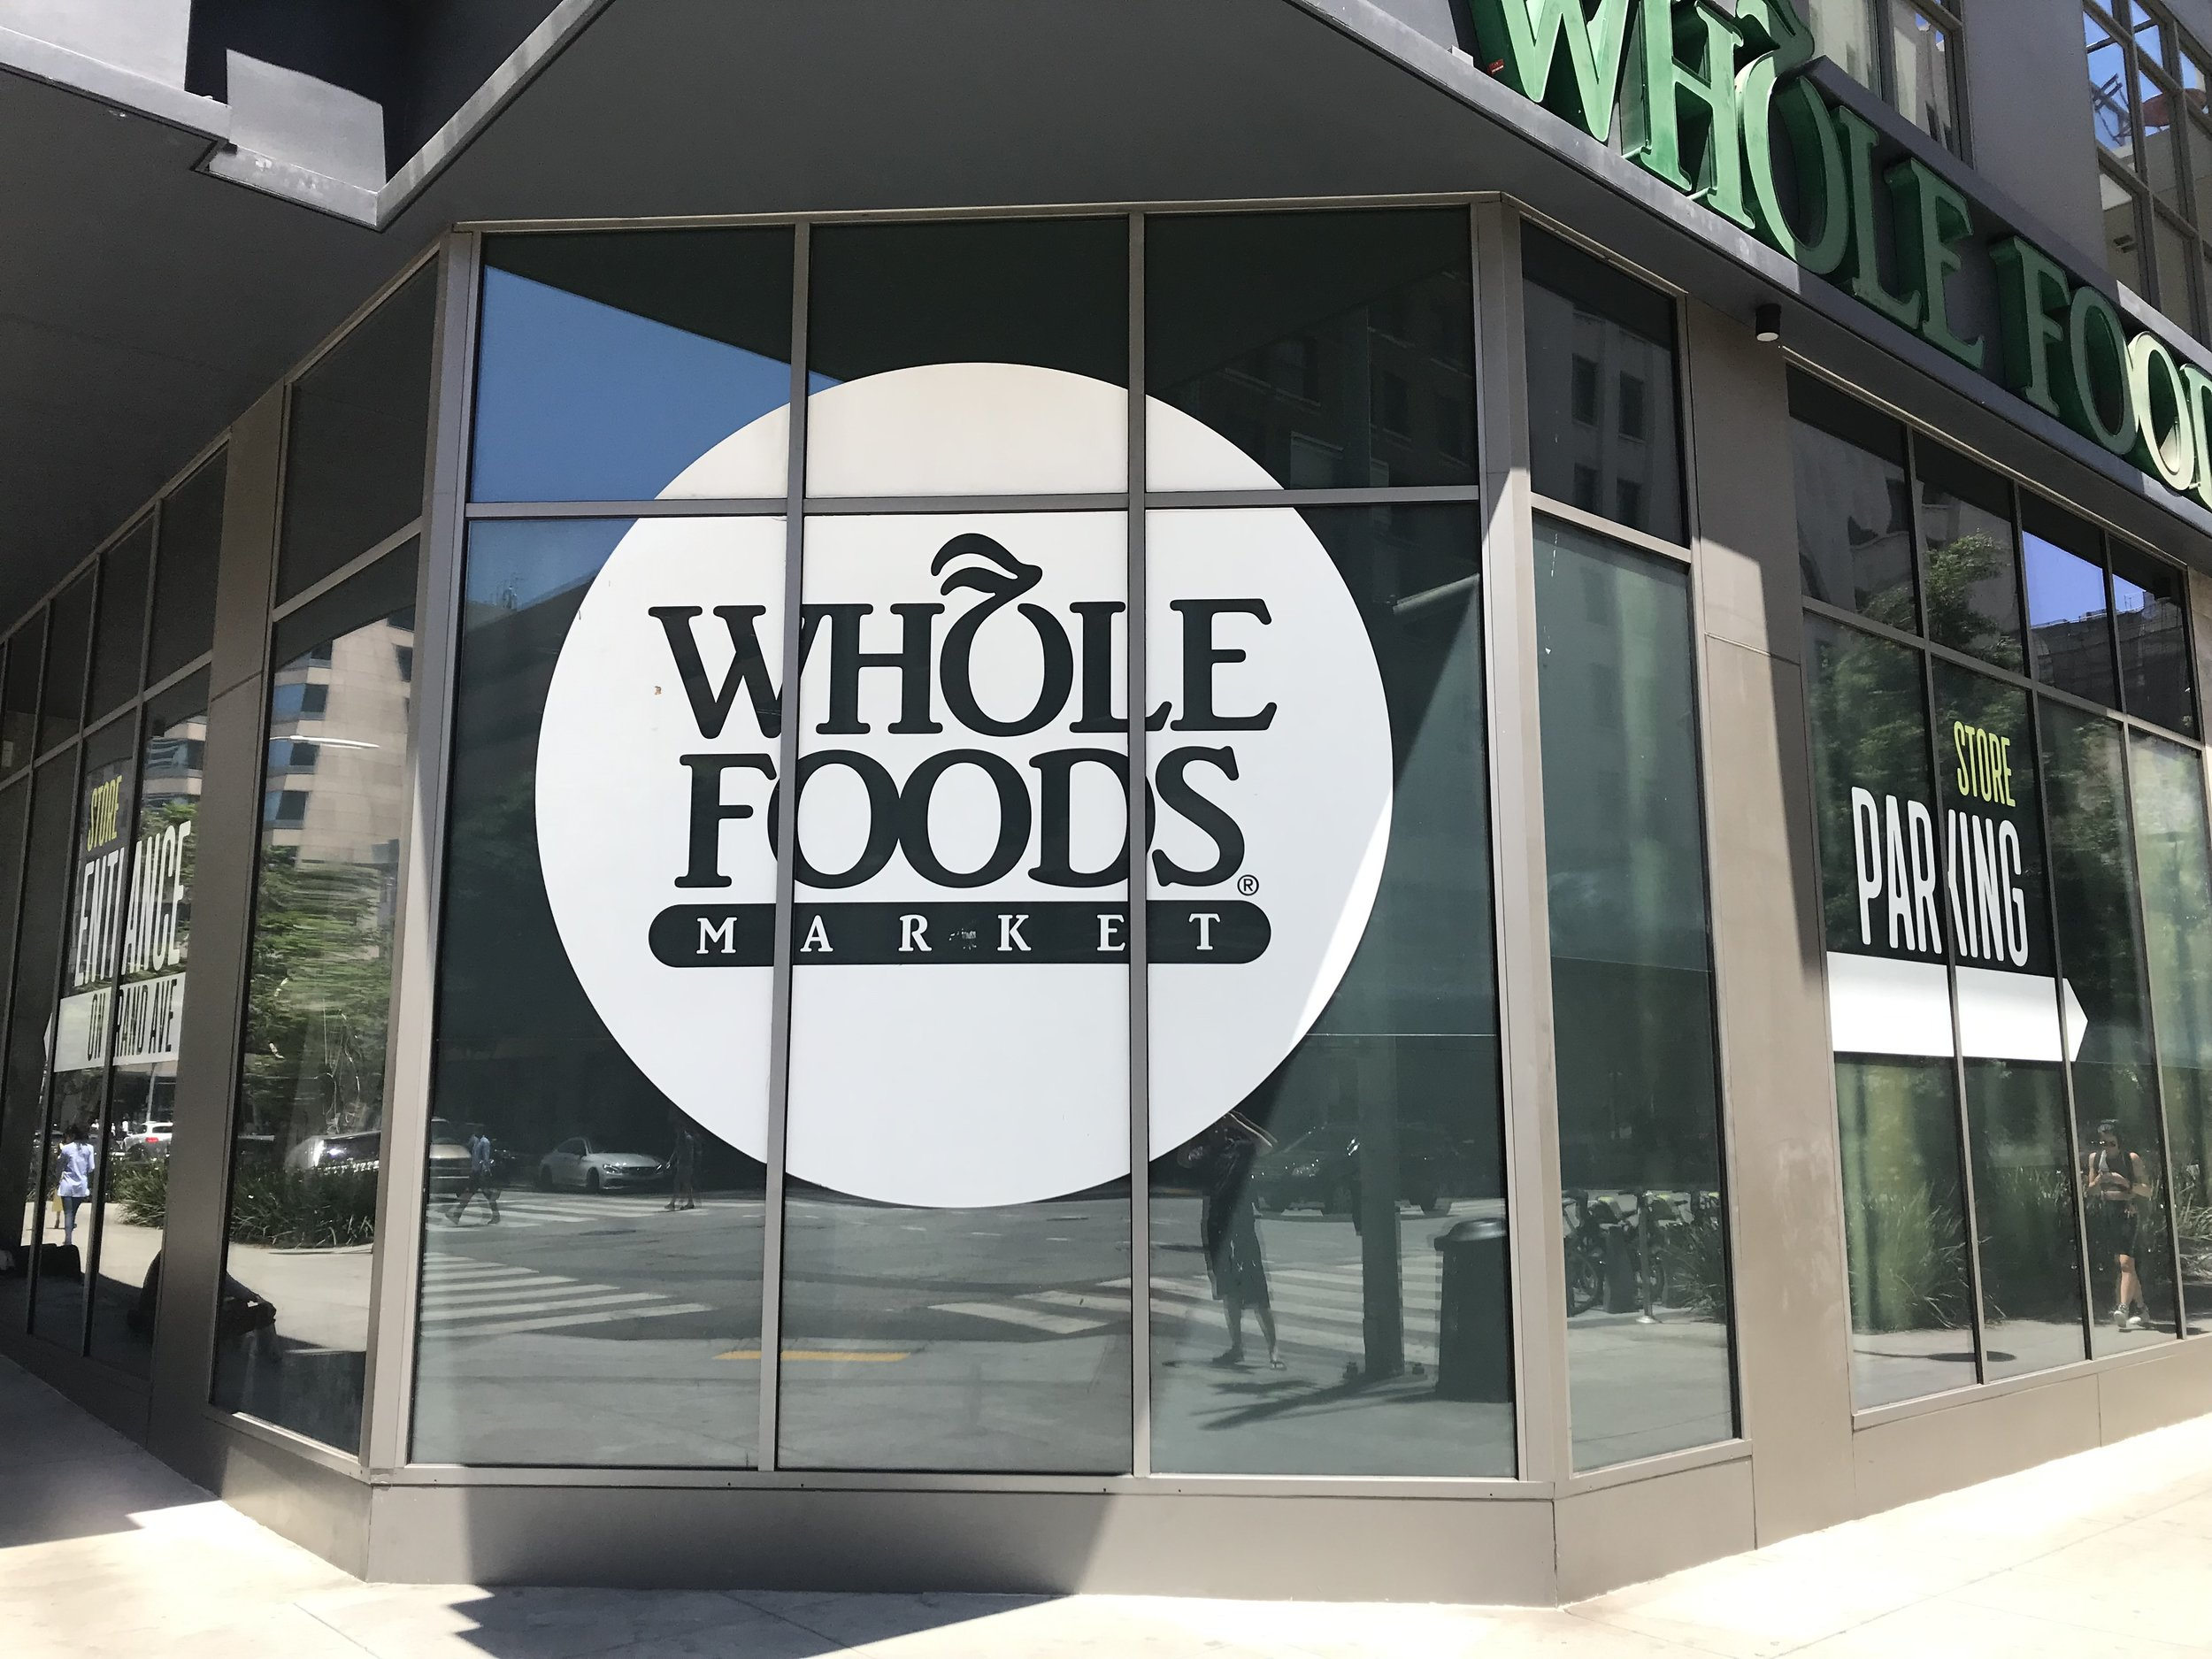 Whole Foods Market on Olive Street, between 7th and 8th Streets — location of one of the first film studios in Los Angeles.